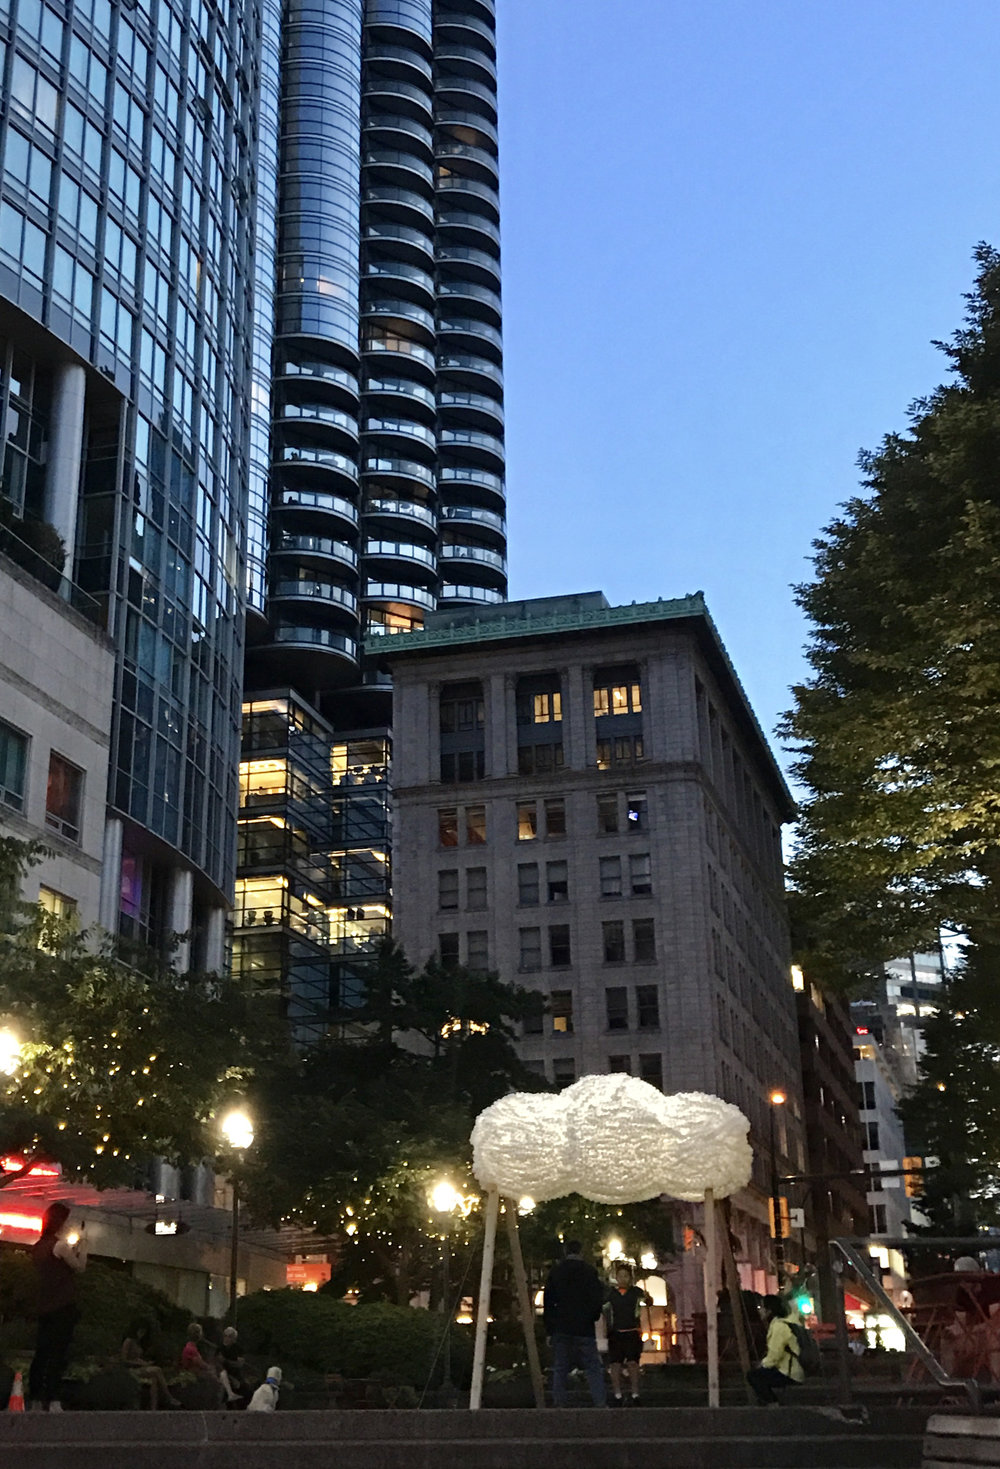 Vancouver's Business District - The second iteration of the Cloud Swing was commissioned by Vancouver's Downtown BIA as a semi permanent installation. The cloud is made out of 18,000 pingpong balls hand stitched onto an alluminium frame.